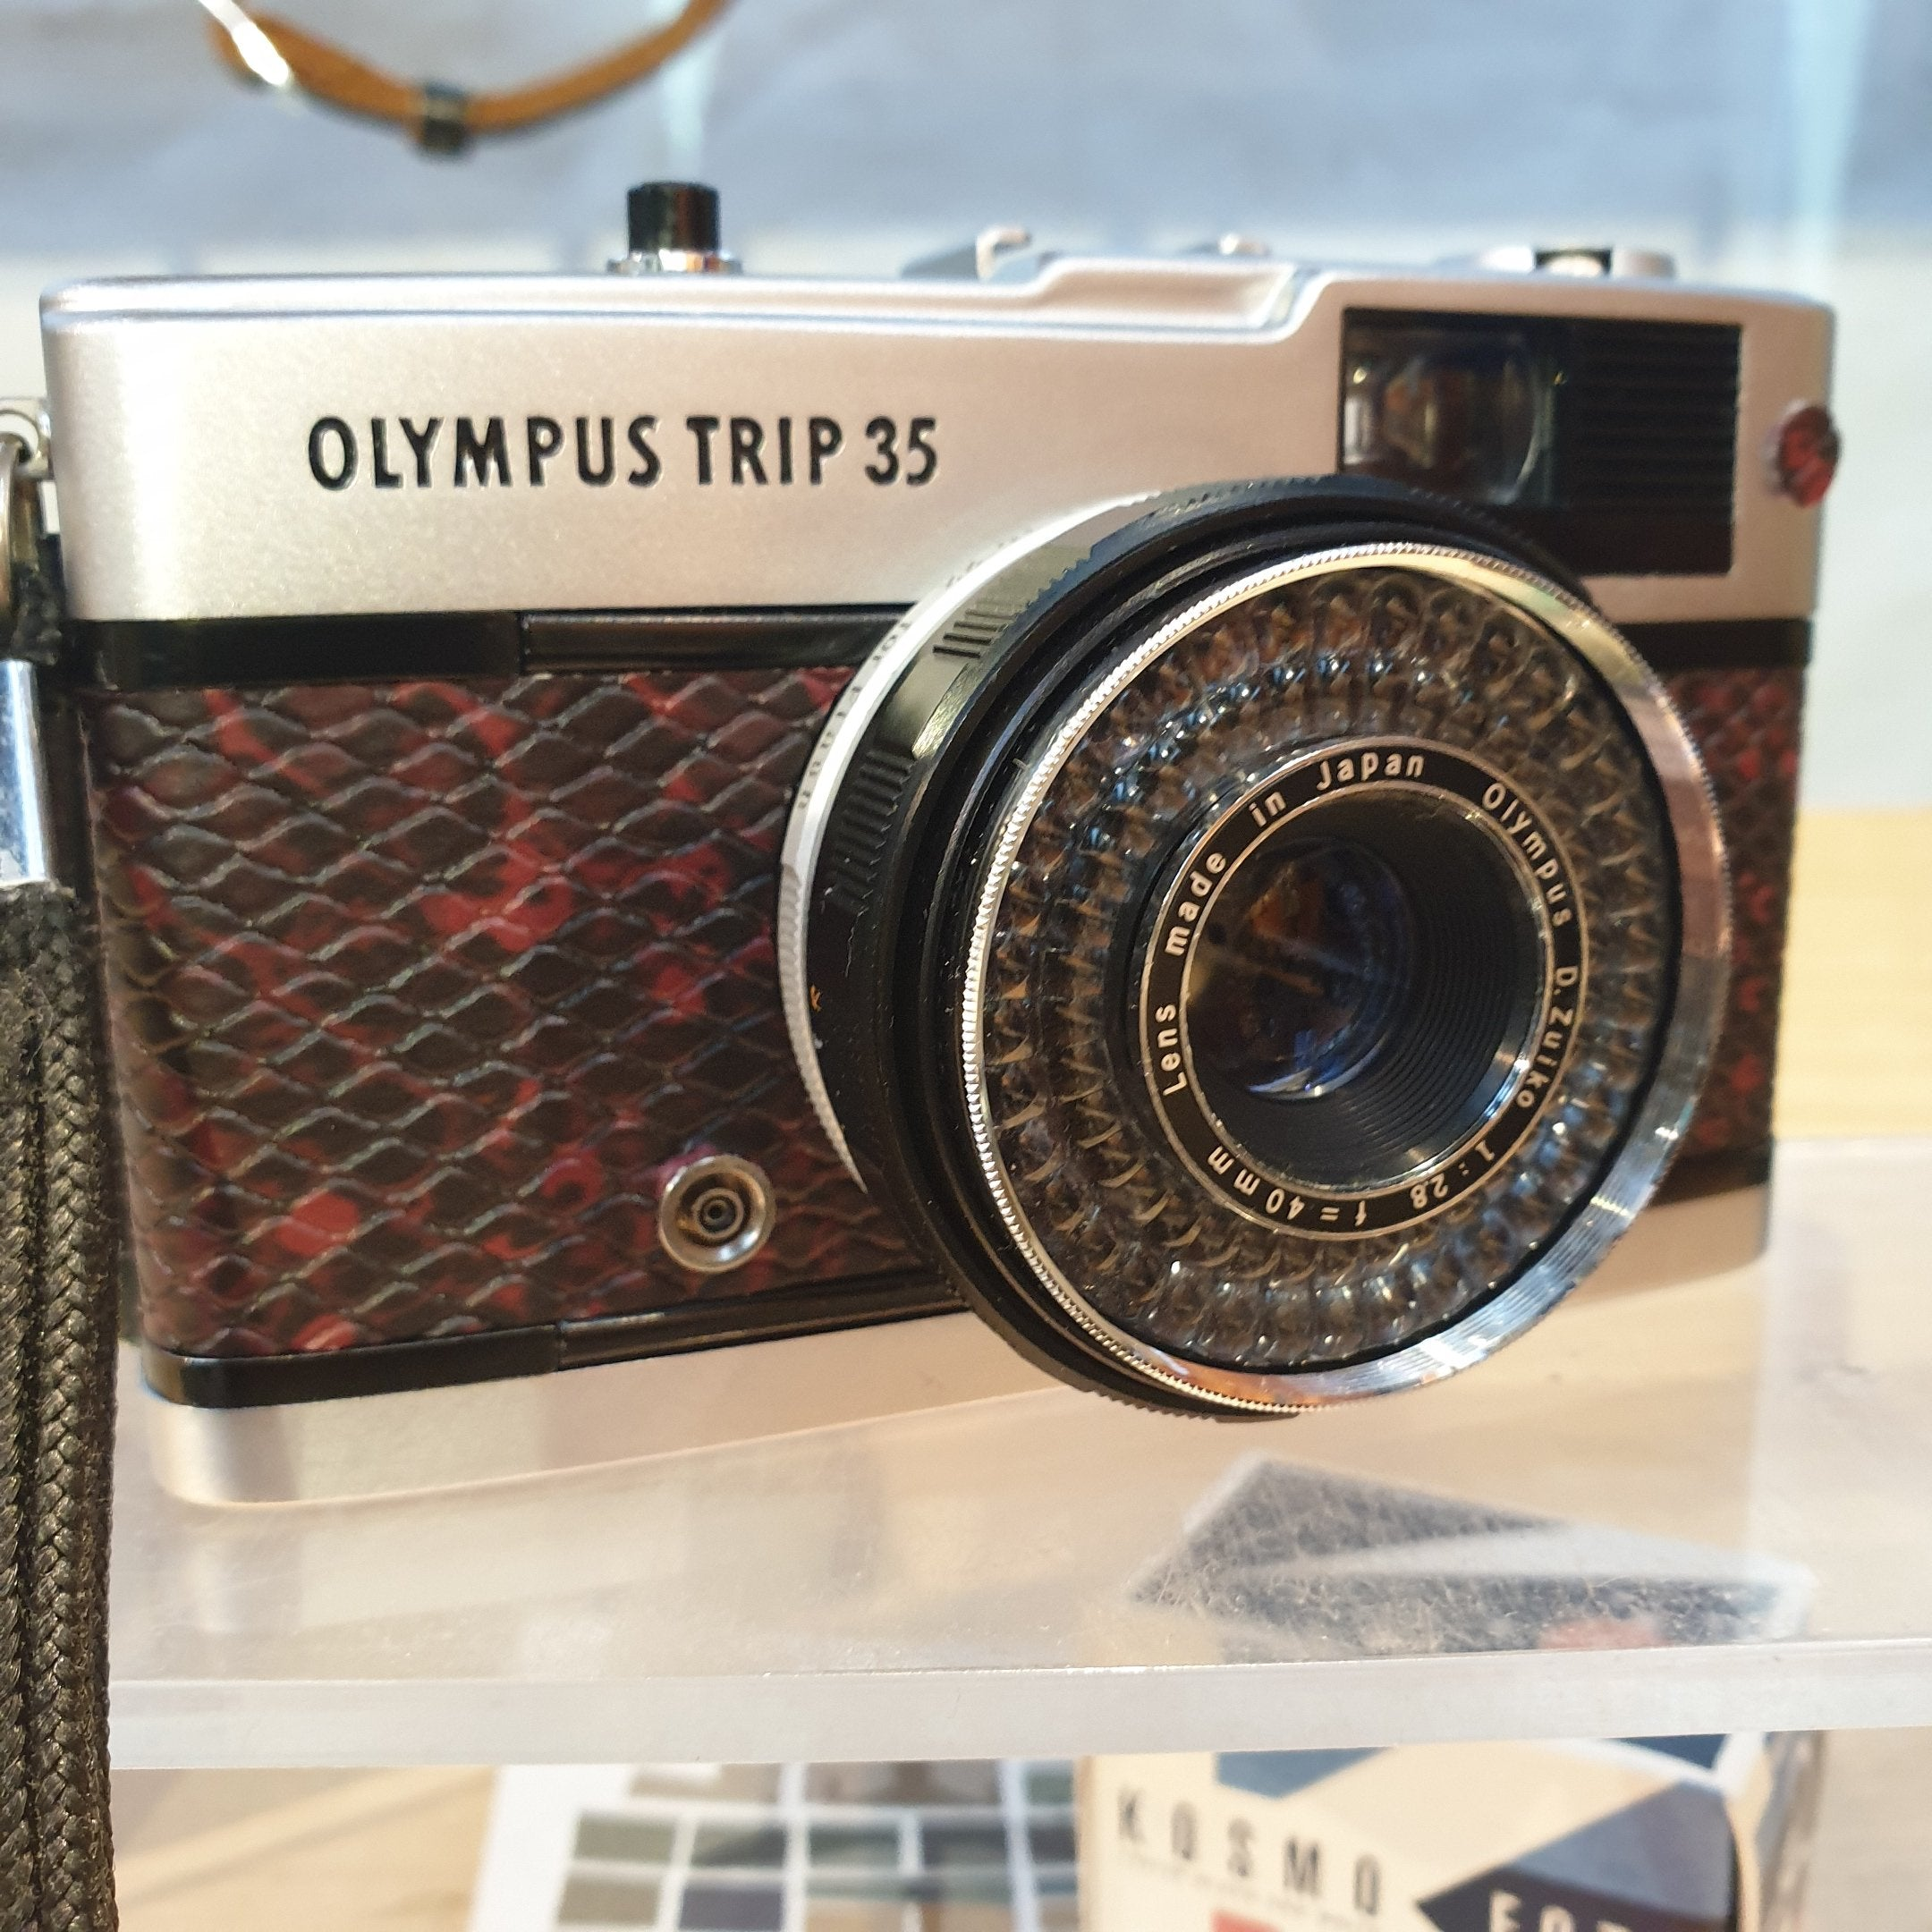 Olympus TRIP 35 red snake (5002063) - Greenwich Cameras and Film